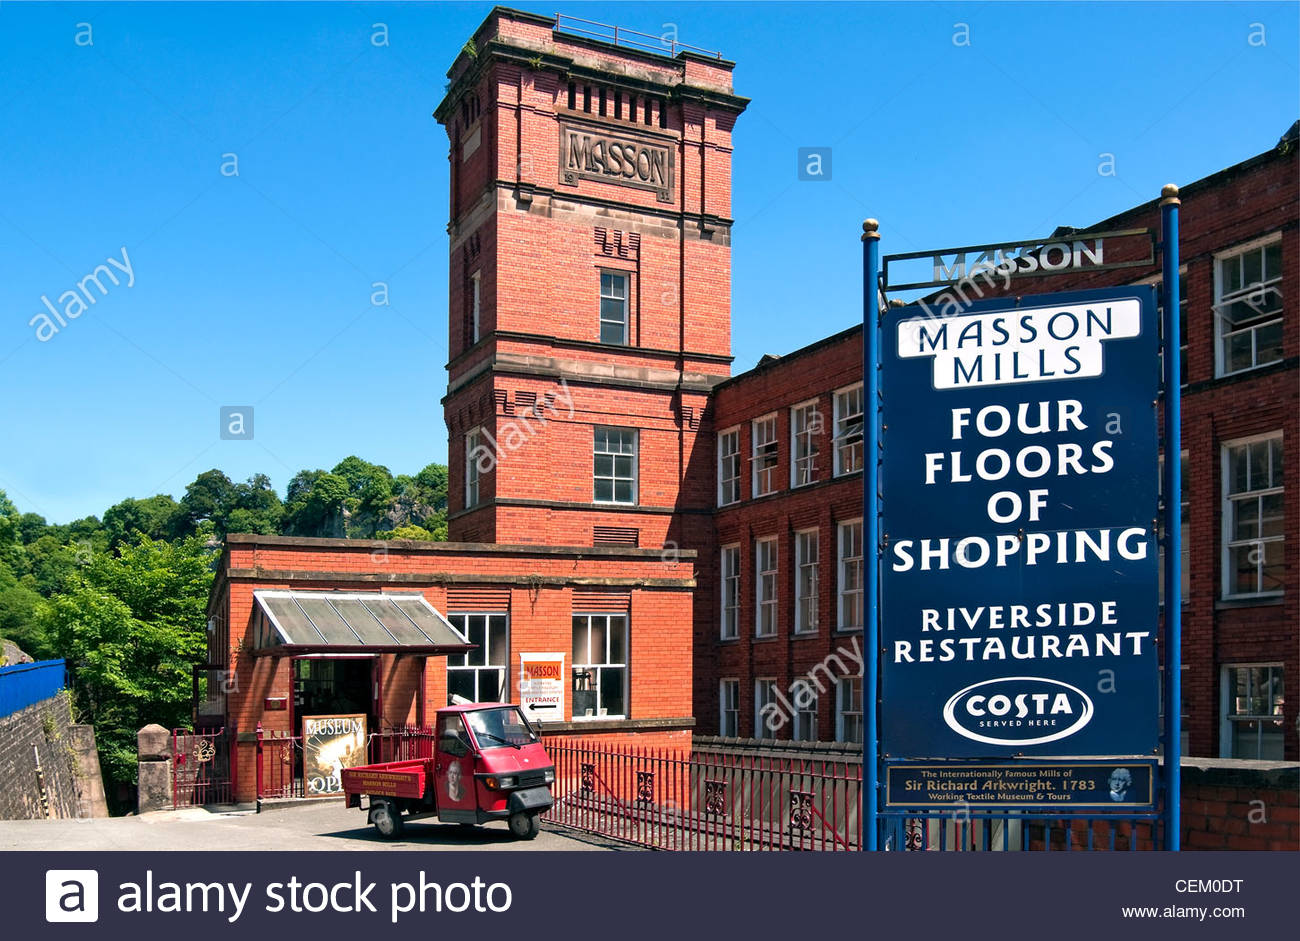 Masson Mill is a water-powered cotton spinning mill situated on the west bank of the River Derwent Valley, England. - Stock Image